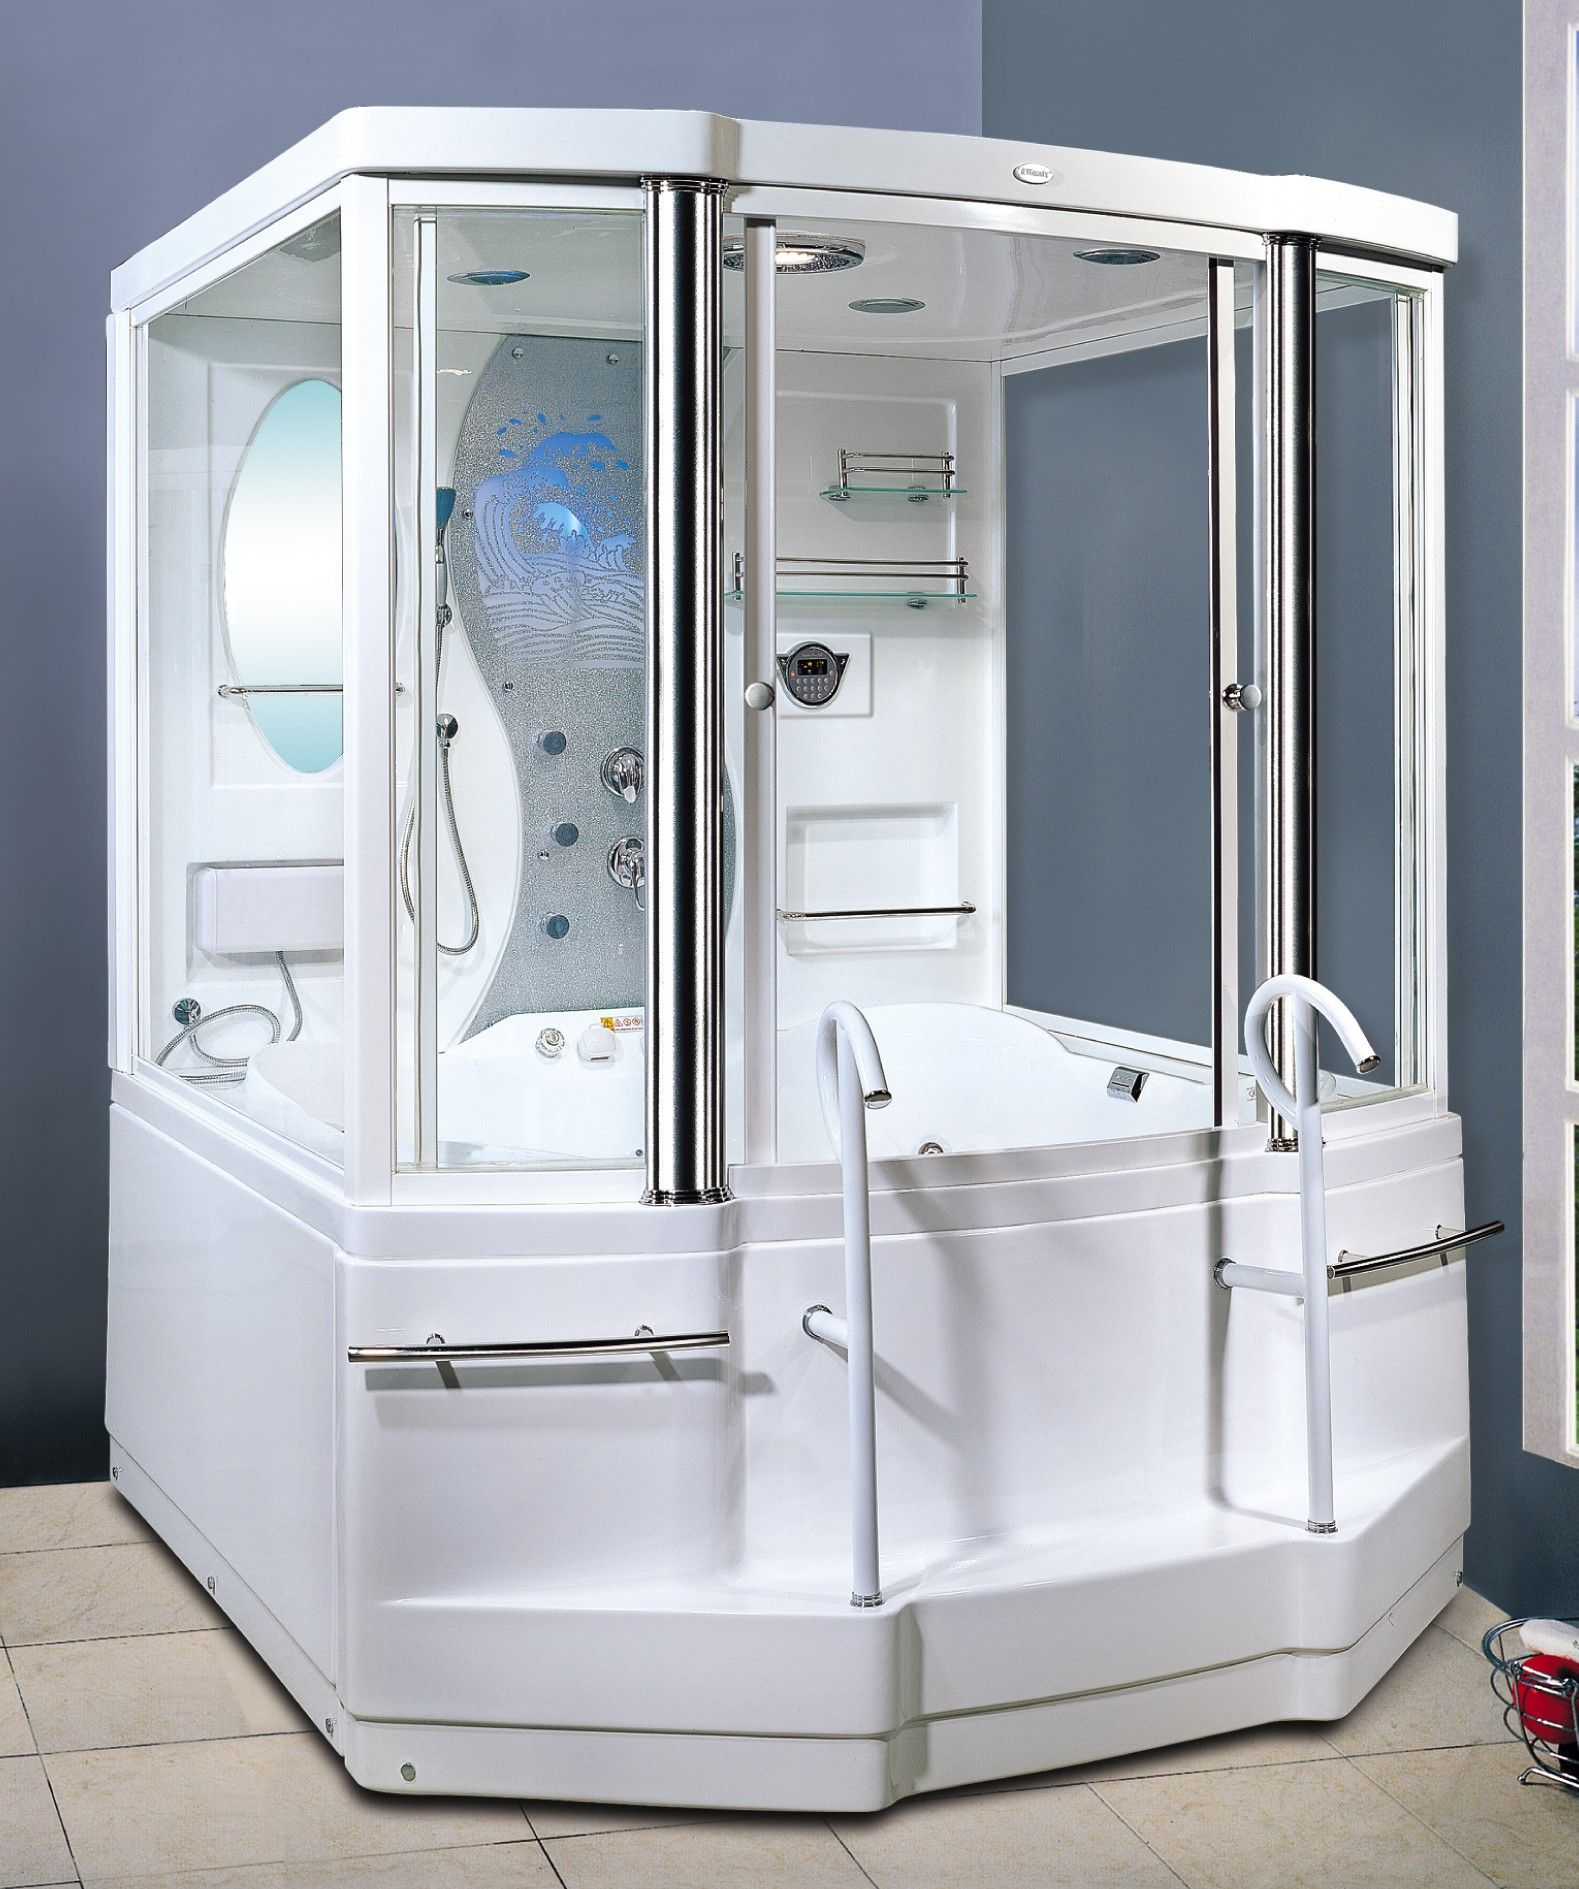 Furniture Soaking Tub Shower Combination Furniture Awesome White Soaking Tub Shower Combination Corner Shower Units Modern Steam Showers Small Shower Stalls